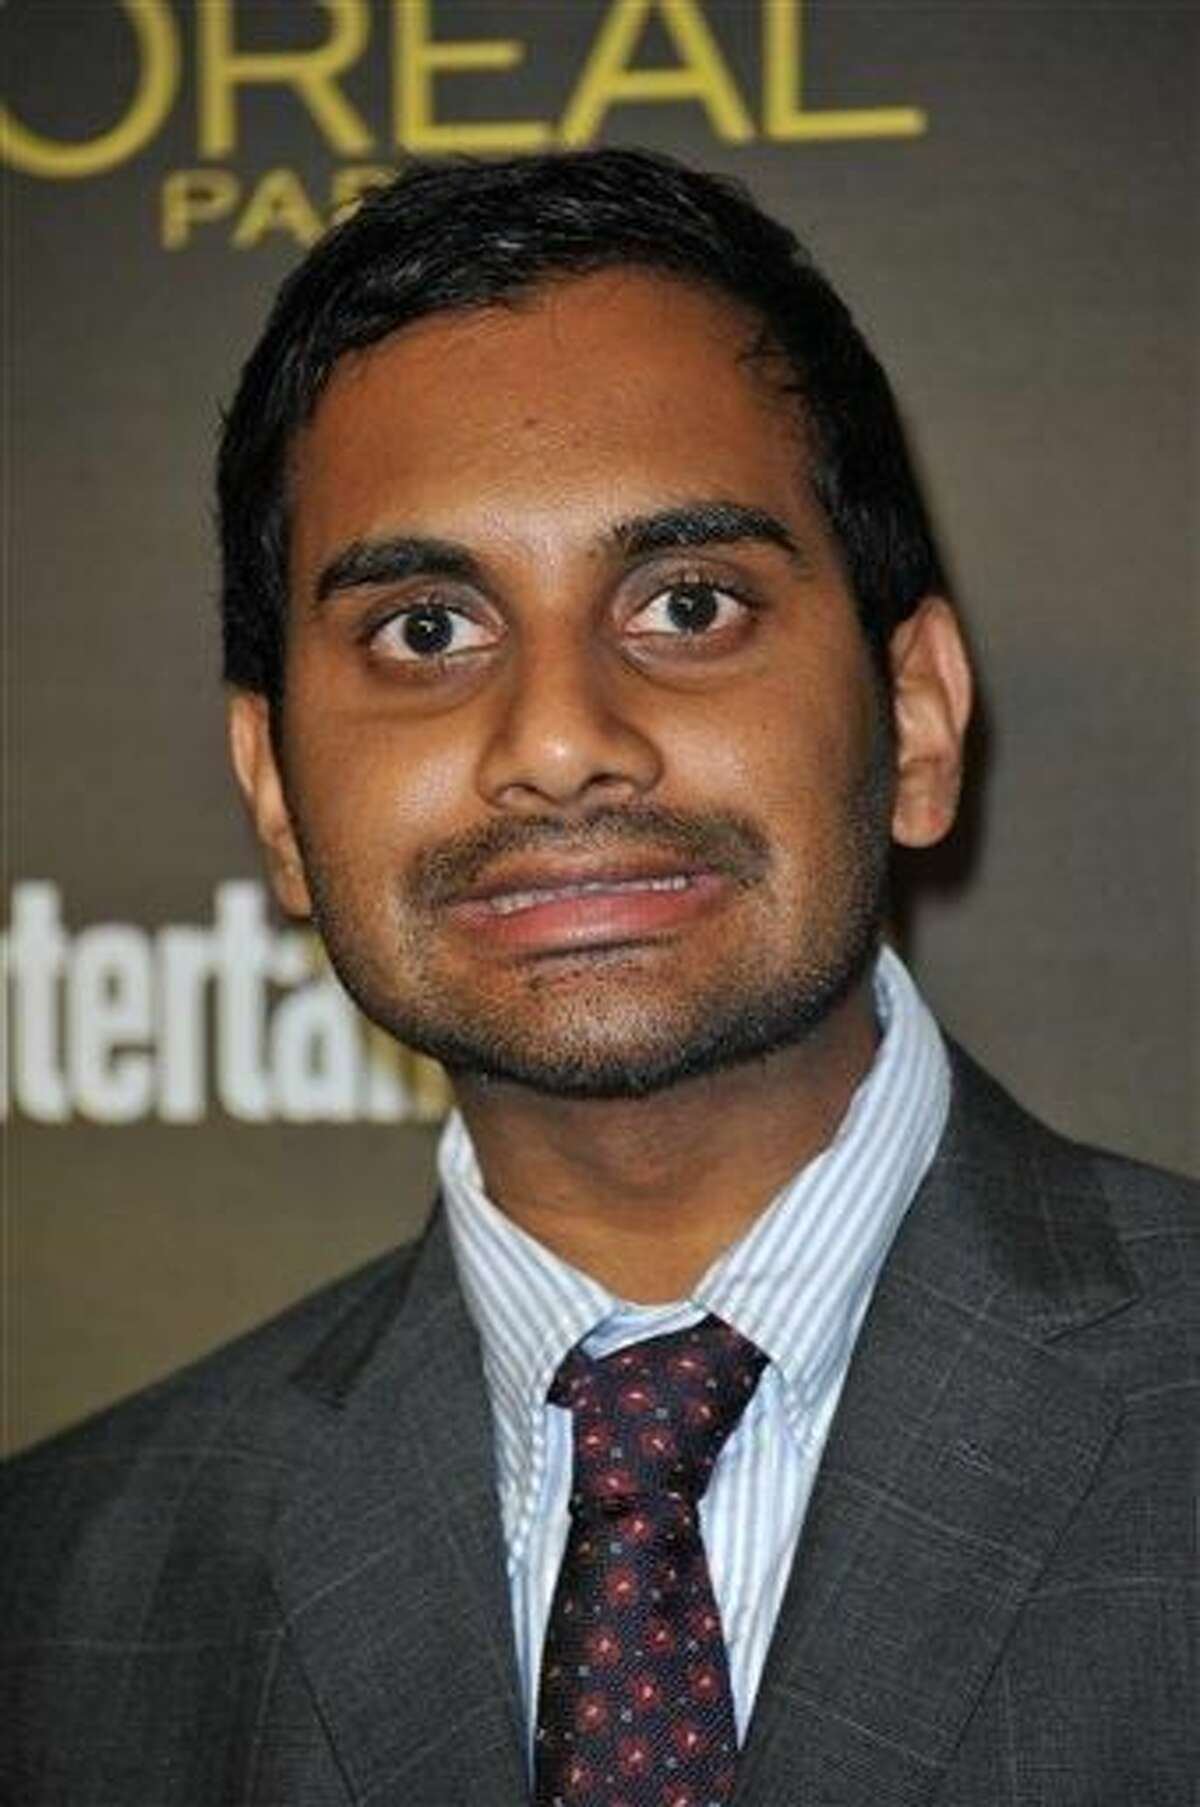 Aziz Ansari attends the Entertainment Weekly Pre Emmy Party at Fig & Olive on Friday, Sept. 21, 2012, in Los Angeles. (Photo by Richard Shotwell/Invision/AP)